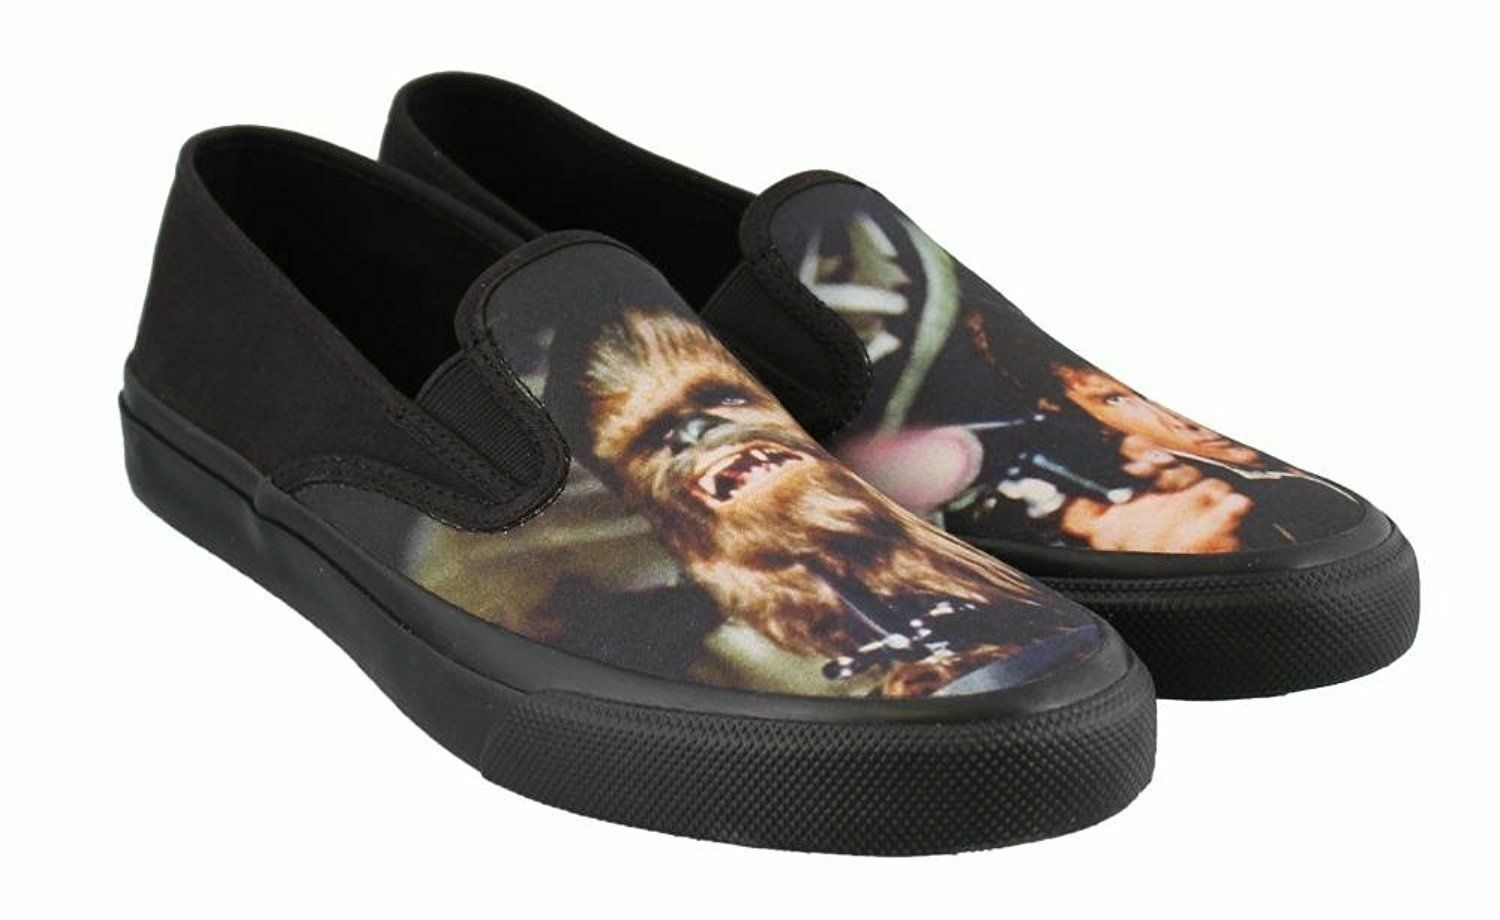 Sperry STAR WARS Slip On Hans Solo Chewie Chewbacca w  box  9  9.5  10  10.5  11